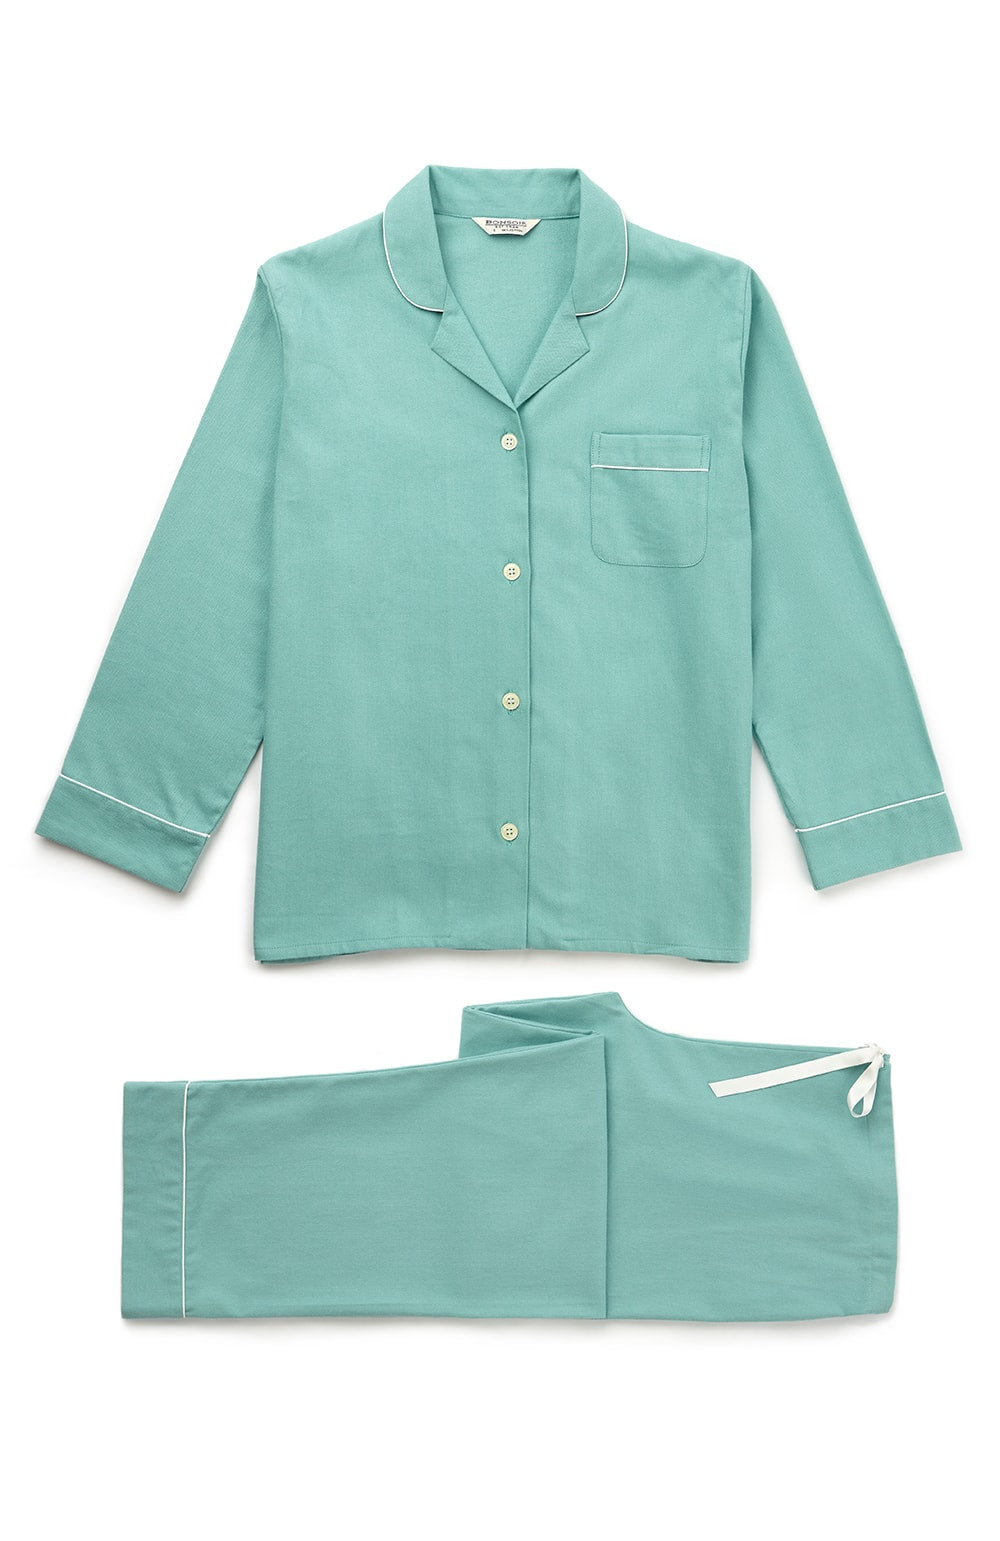 Brushed Pastel Pyjamas (blps) - Aqua | Bonsoir of London